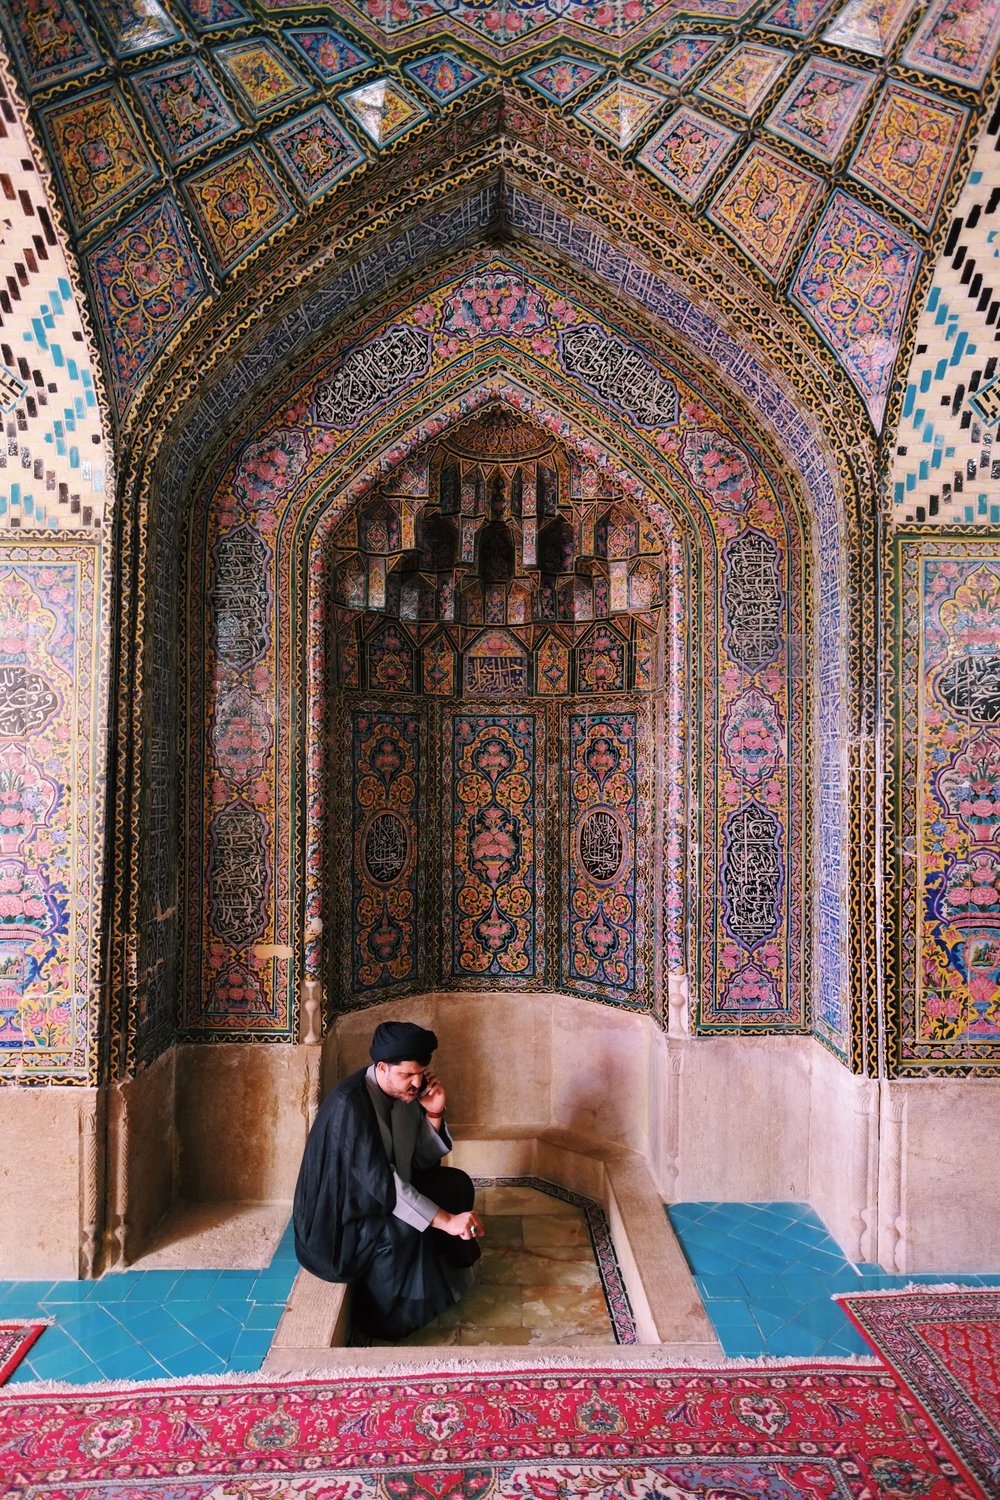 Pink Mosque in Iran by Joost Bastmeijer.jpeg